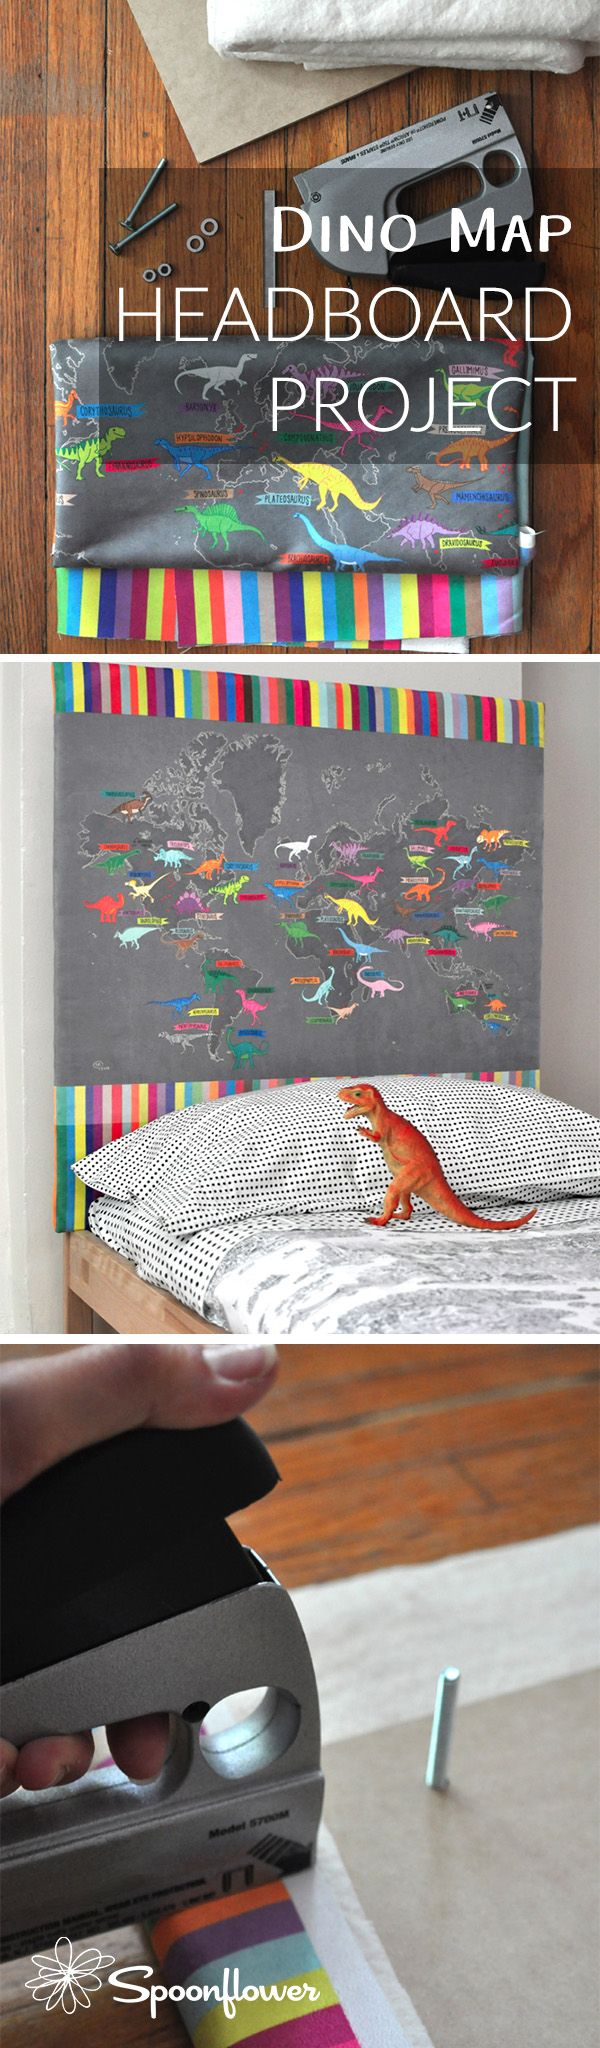 Dino Map Headboard Project - See how fabric designer, artist, and mama extraordinaire Samarra Khaja (SammyK on Spoonflower) created this dino map headboard for her son out of our new Faux Suede fabric and learn how to make a DIY headboard of your own!